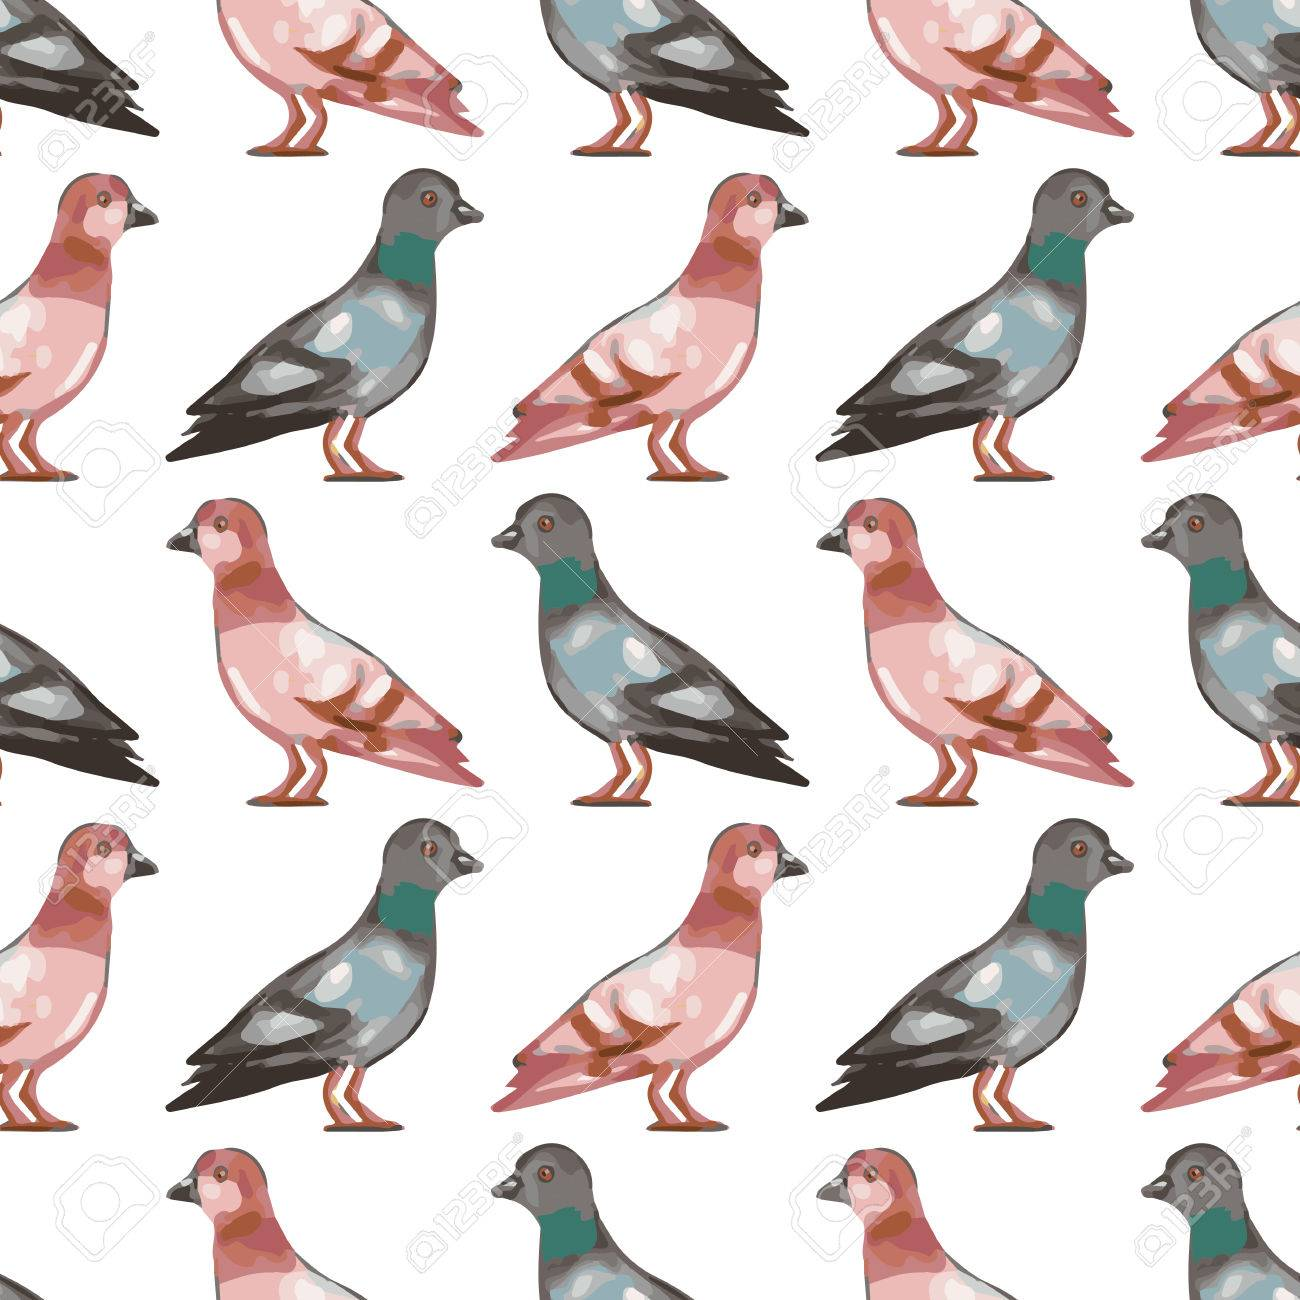 seamless pattern with birds, cute pigeons. vector seamless texture